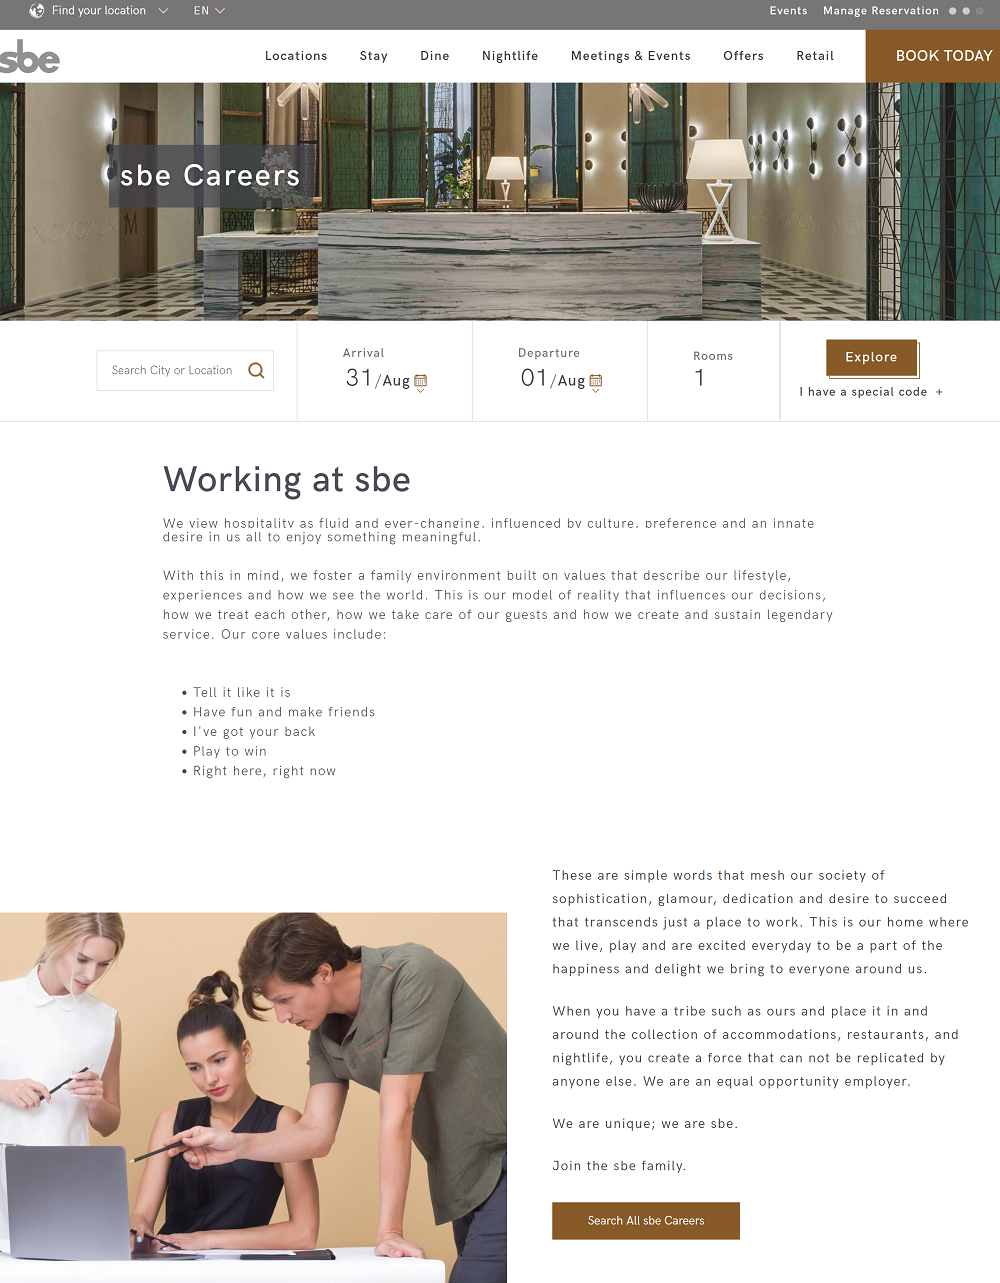 sbe career page